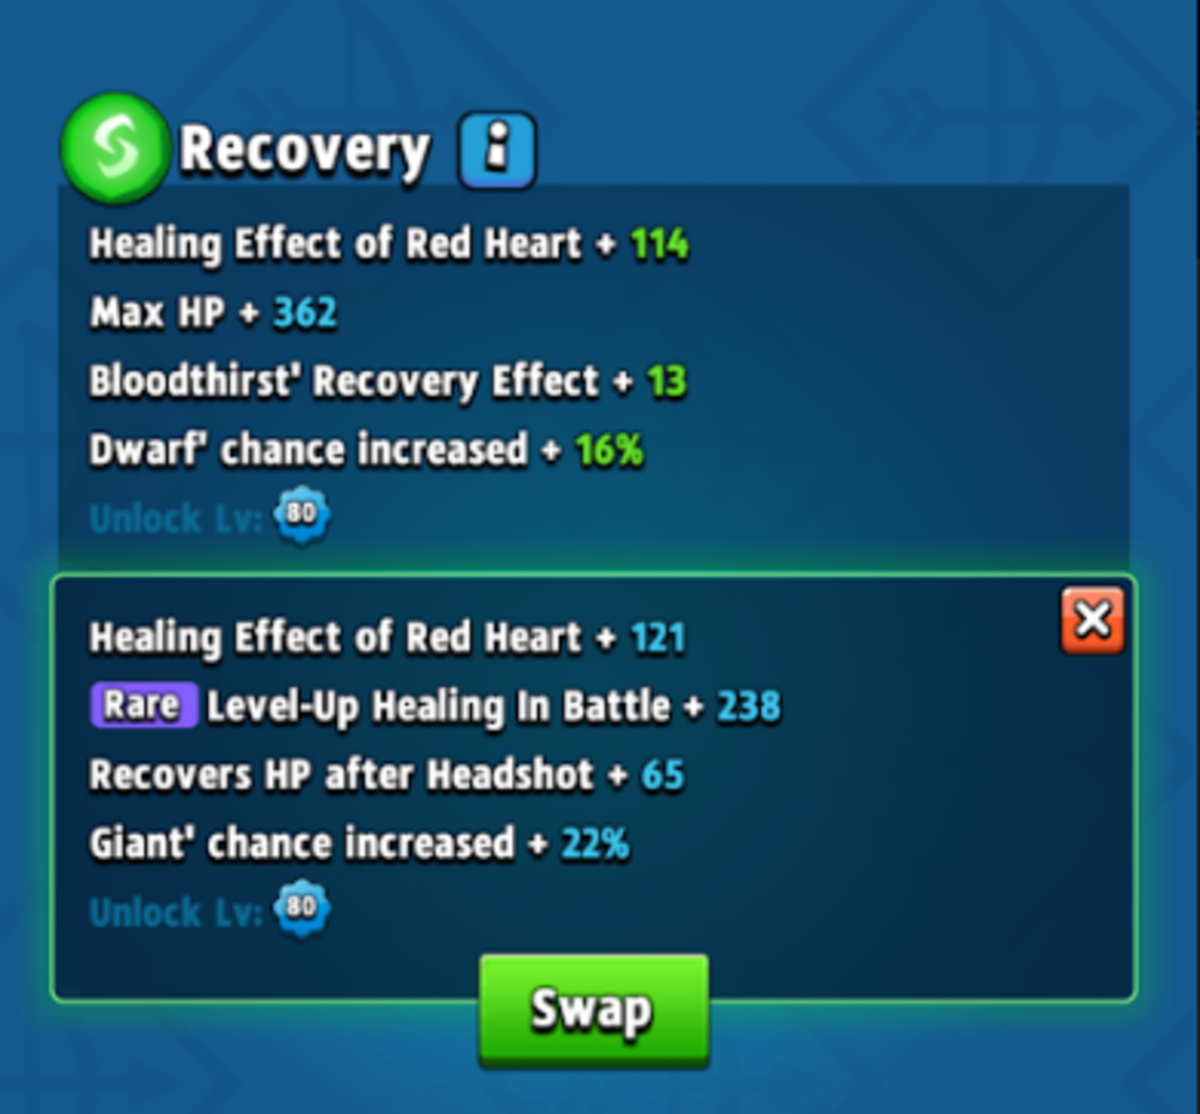 After forging, you can choose to swap in the new stats to replace your old ones, or hit the red X button to keep your old stats.